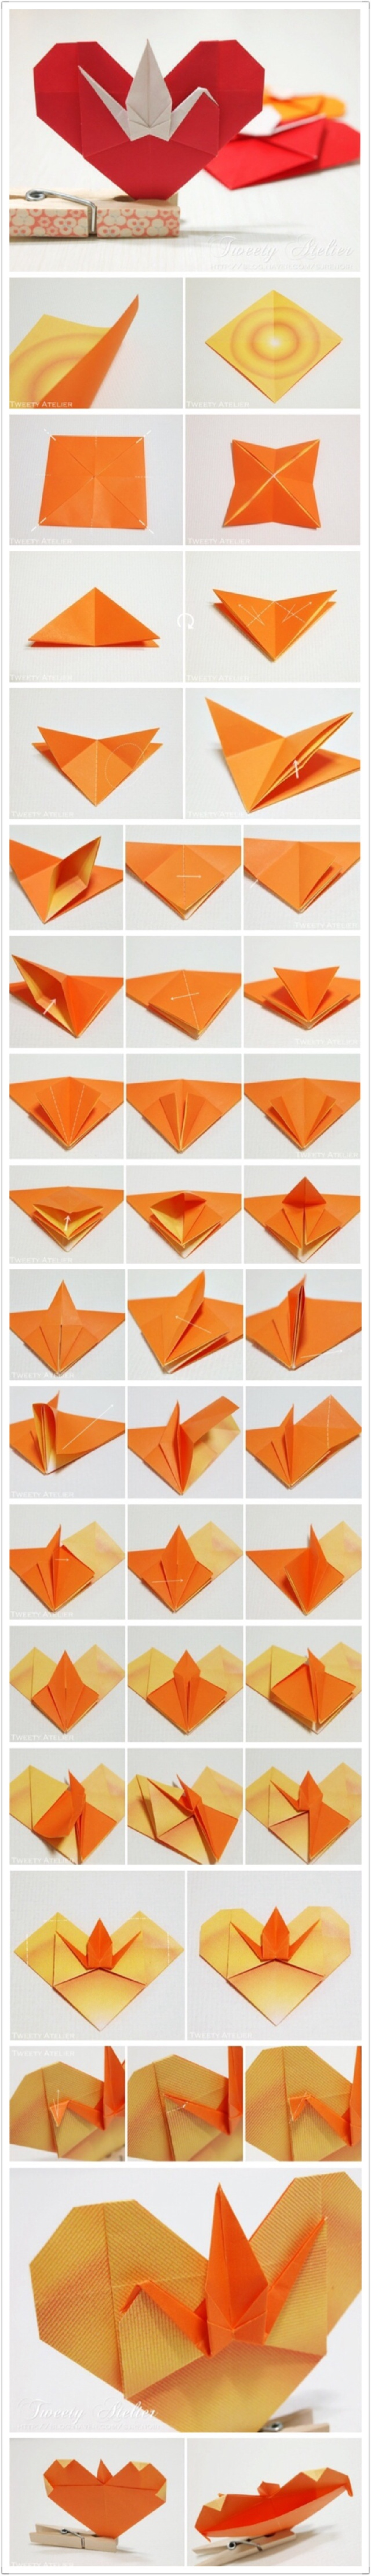 Pin by life filler on paper game origami pinterest paper paper games origami tao heart shapes fit atelier tutorials paper jeuxipadfo Images